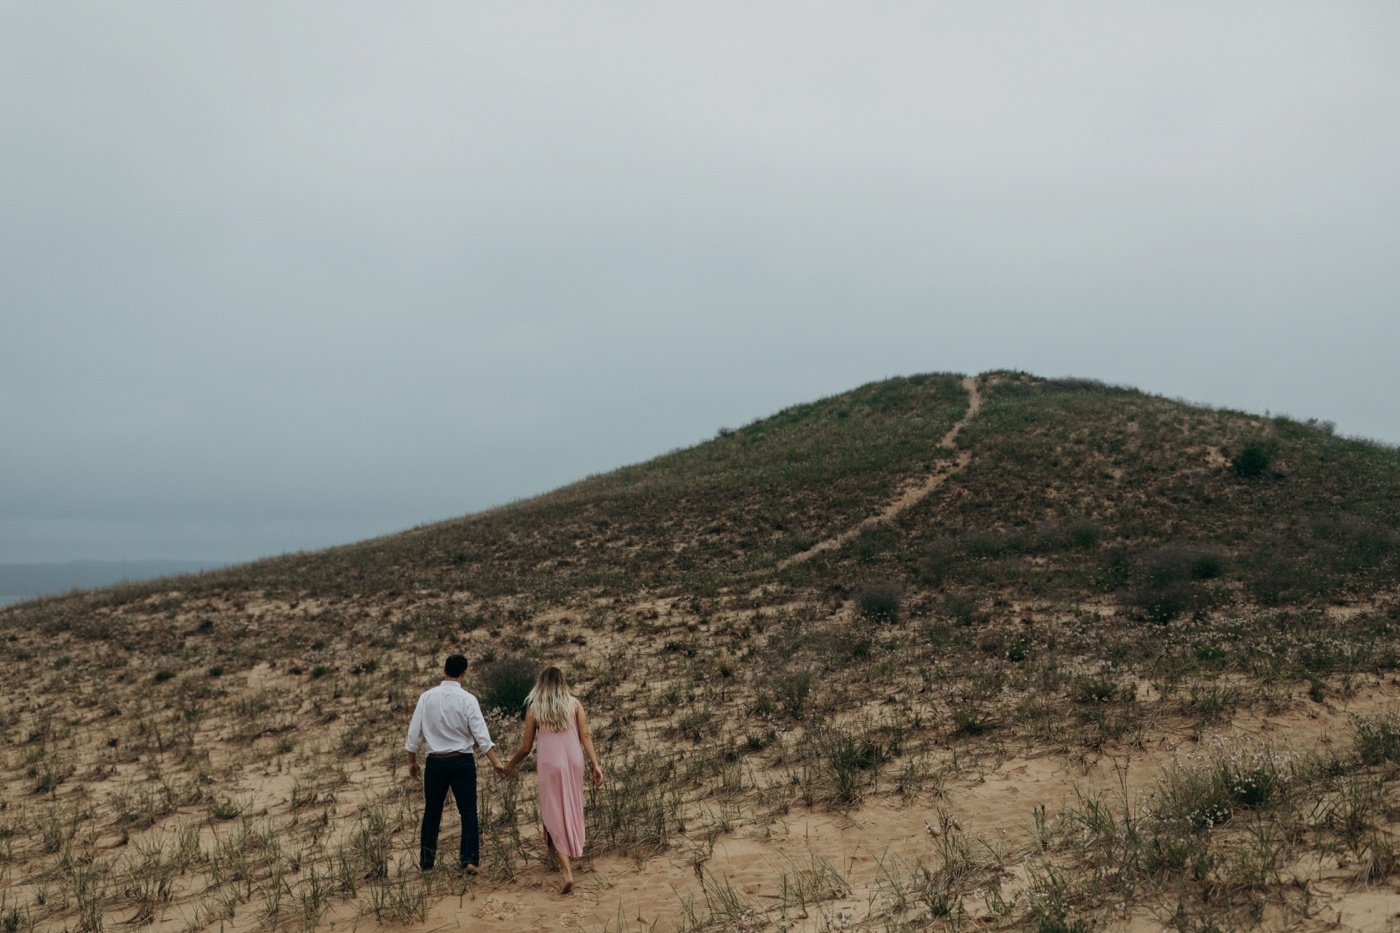 Sleeping_Bear_Dunes_Couples_Adventure_Session_Adventure_Wedding_Photographer_Hiking_with_Heels_Brett+Emily-24.jpg